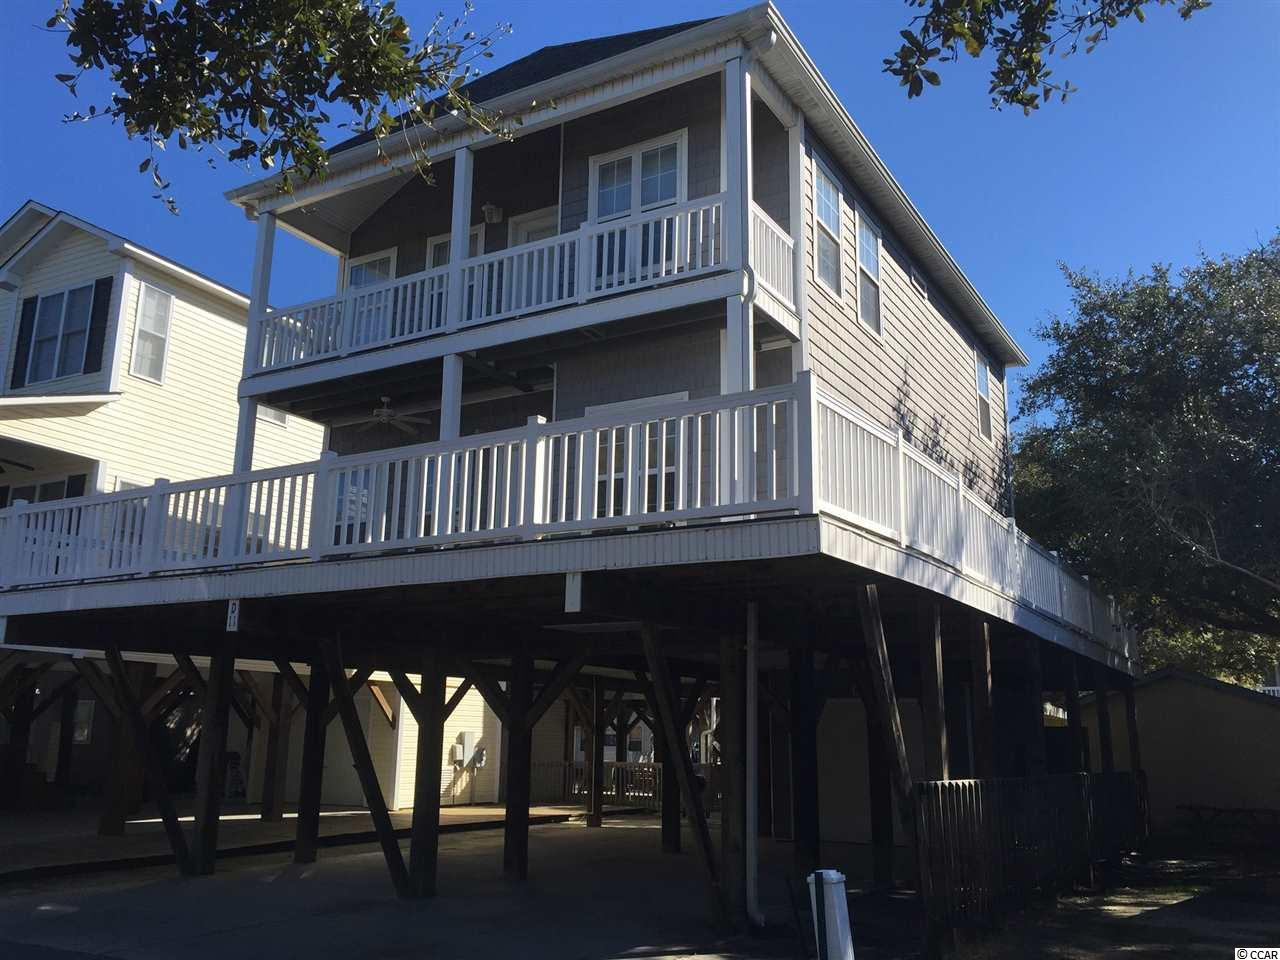 If you are looking for your place at the beach, THIS IS IT!  Located in the award winning Ocean Lakes Family Campground.  Over 310 acres of family fun waiting for you.  This home is located in a very unique area...East Canal Lane runs along a small creek within the campground.  Sit on your porch and watch the ducks and swans swans swim by....some homes are so close together that all you can see when you sit on your porch is the deck of the home in front of  you!  Not at this one....nature awaits you...beautiful place after the sunsets to sit and relax.  Large outside porch with deck furniture.  Let's go inside!!!  Inside this home is a very spacious living area.  Two sitting areas offer an area for those that want to watch TV to sit and have fun while the other sitting area offers ample room to sit and talk or read a book, all while everyone is still together.  Large kitchen area and fully stocked too!  Downstairs there is a queen bedroom with a private full bath.  There is also a half bath downstairs as well.  Upstairs there is a large master bedroom with a king size bed and private access to the upper deck.  Large walk in closet and a private full bath.  Full size washer and dryer located upstairs for convenience.  There is another large queen bedroom with large closet.  There is another bedroom with 2 sets of twin on twin bunk beds.  These two rooms share a Jack and Jill bathroom!  This home is offers an abundance of natural light as it has many windows located throughout.  Attached shed is located downstairs and there is plenty of room for parking cars.  Nice area for grilling and sitting outside and enjoying the weather.  Outside enclosed shower with hot and cold water also.  This beach house is less than a two minute walk to the beach and a short walk to the recreation center, pools and water park.  This is a great opportunity to own your very own beach house.  Great rental potential!!